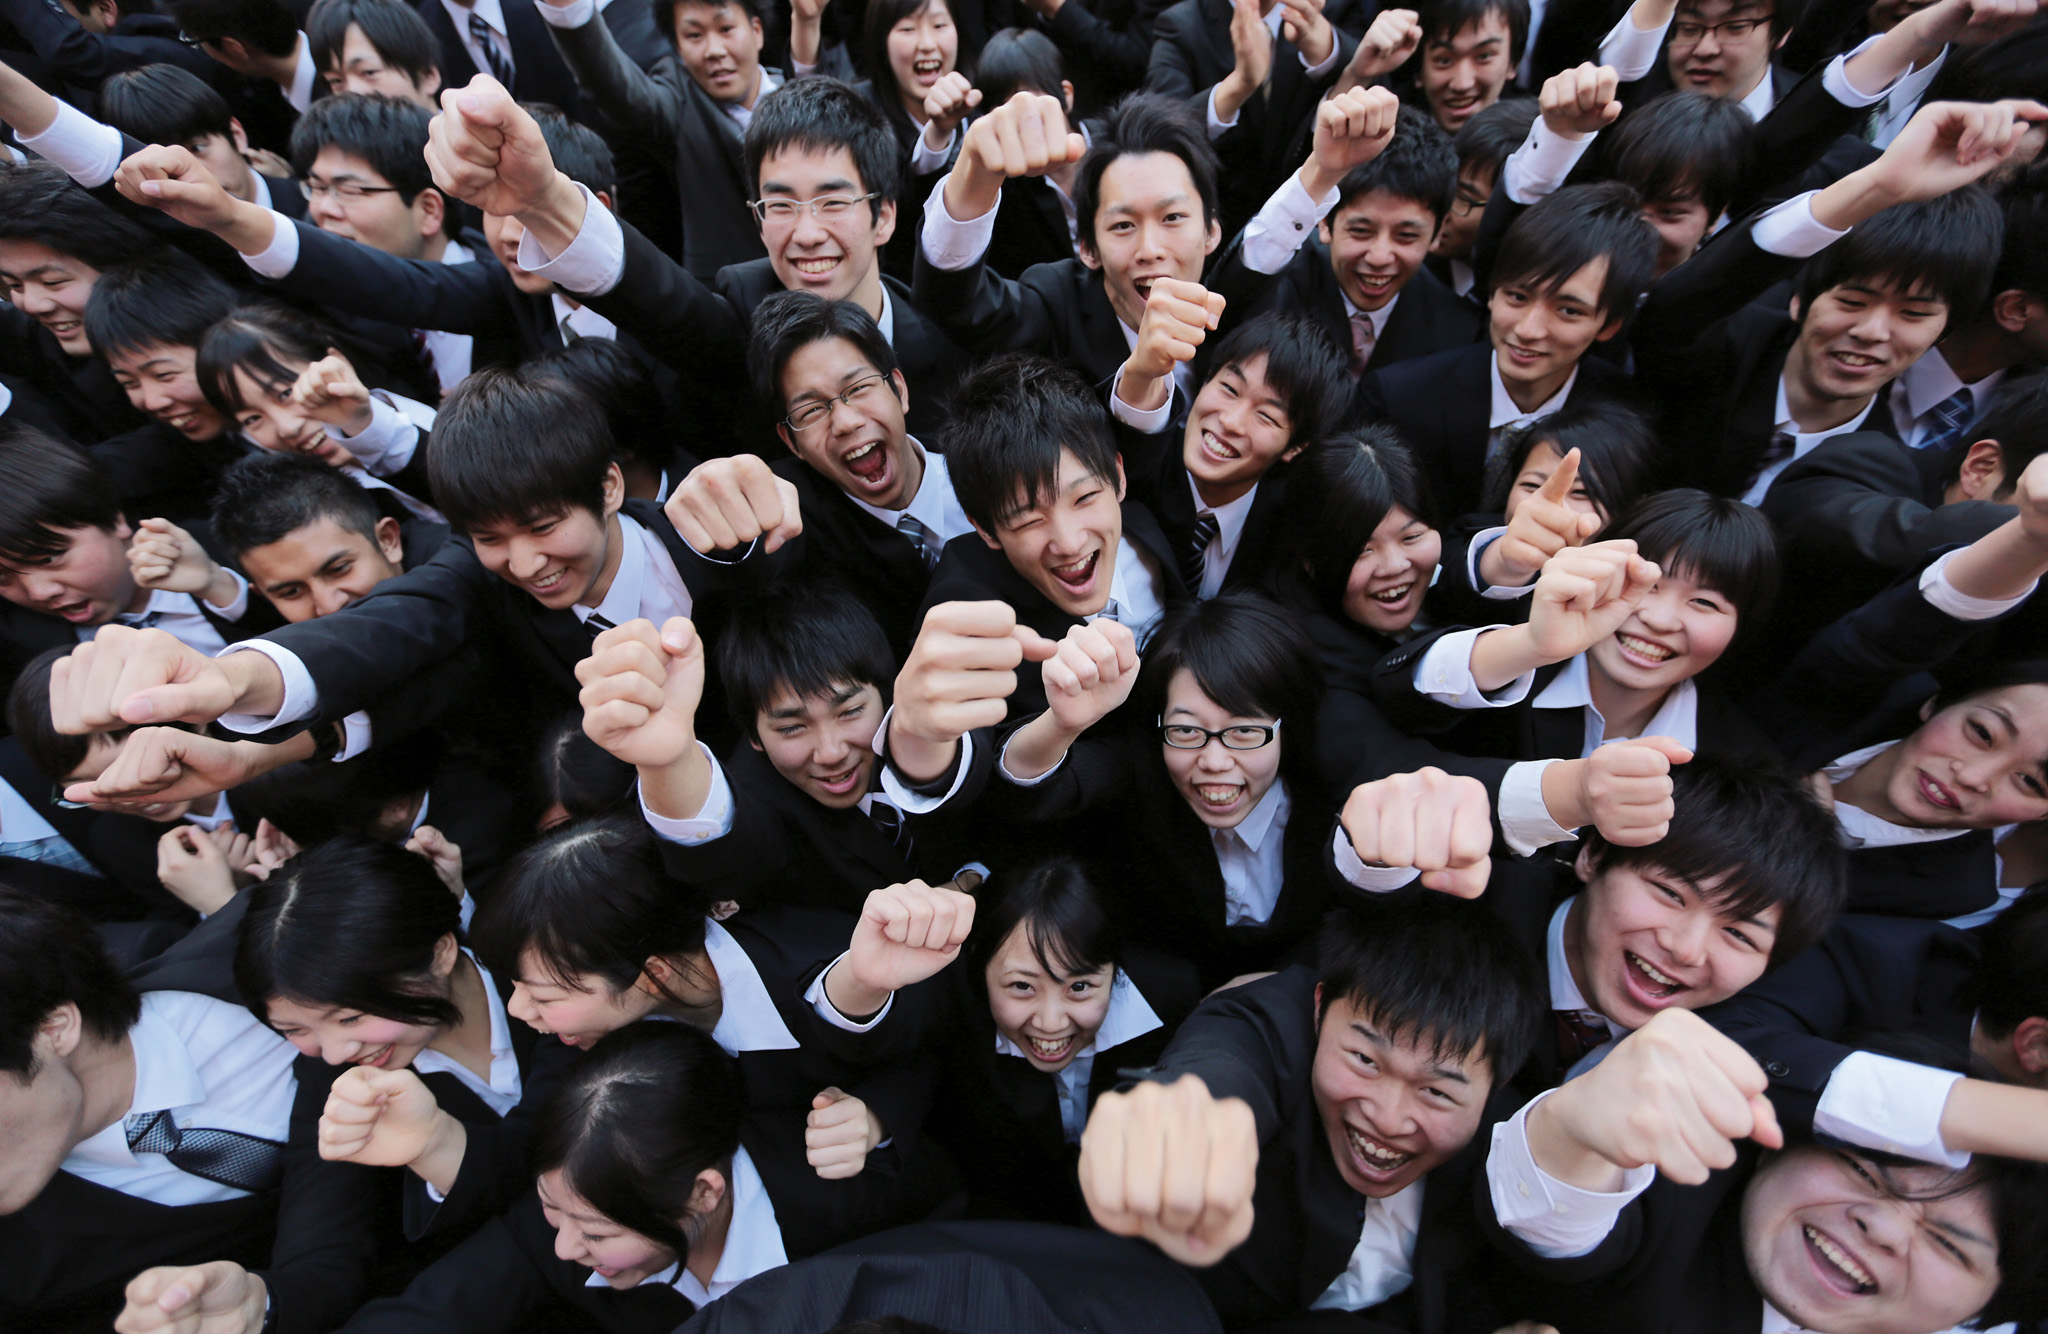 Vocational Students Attend Pep Rally Ahead Of Job Hunting...Vocational school students raise their fists during a rally to start off job-hunting in Tokyo, Japan, on Wednesday, Jan. 29, 2014. Japan's jobless rate held at 4 percent in October, and the number of positions on offer for every 100 people seeking work rose to 98, the highest level since 2007 -- a sign of tightening in the job market that could put upward pressure on wages.